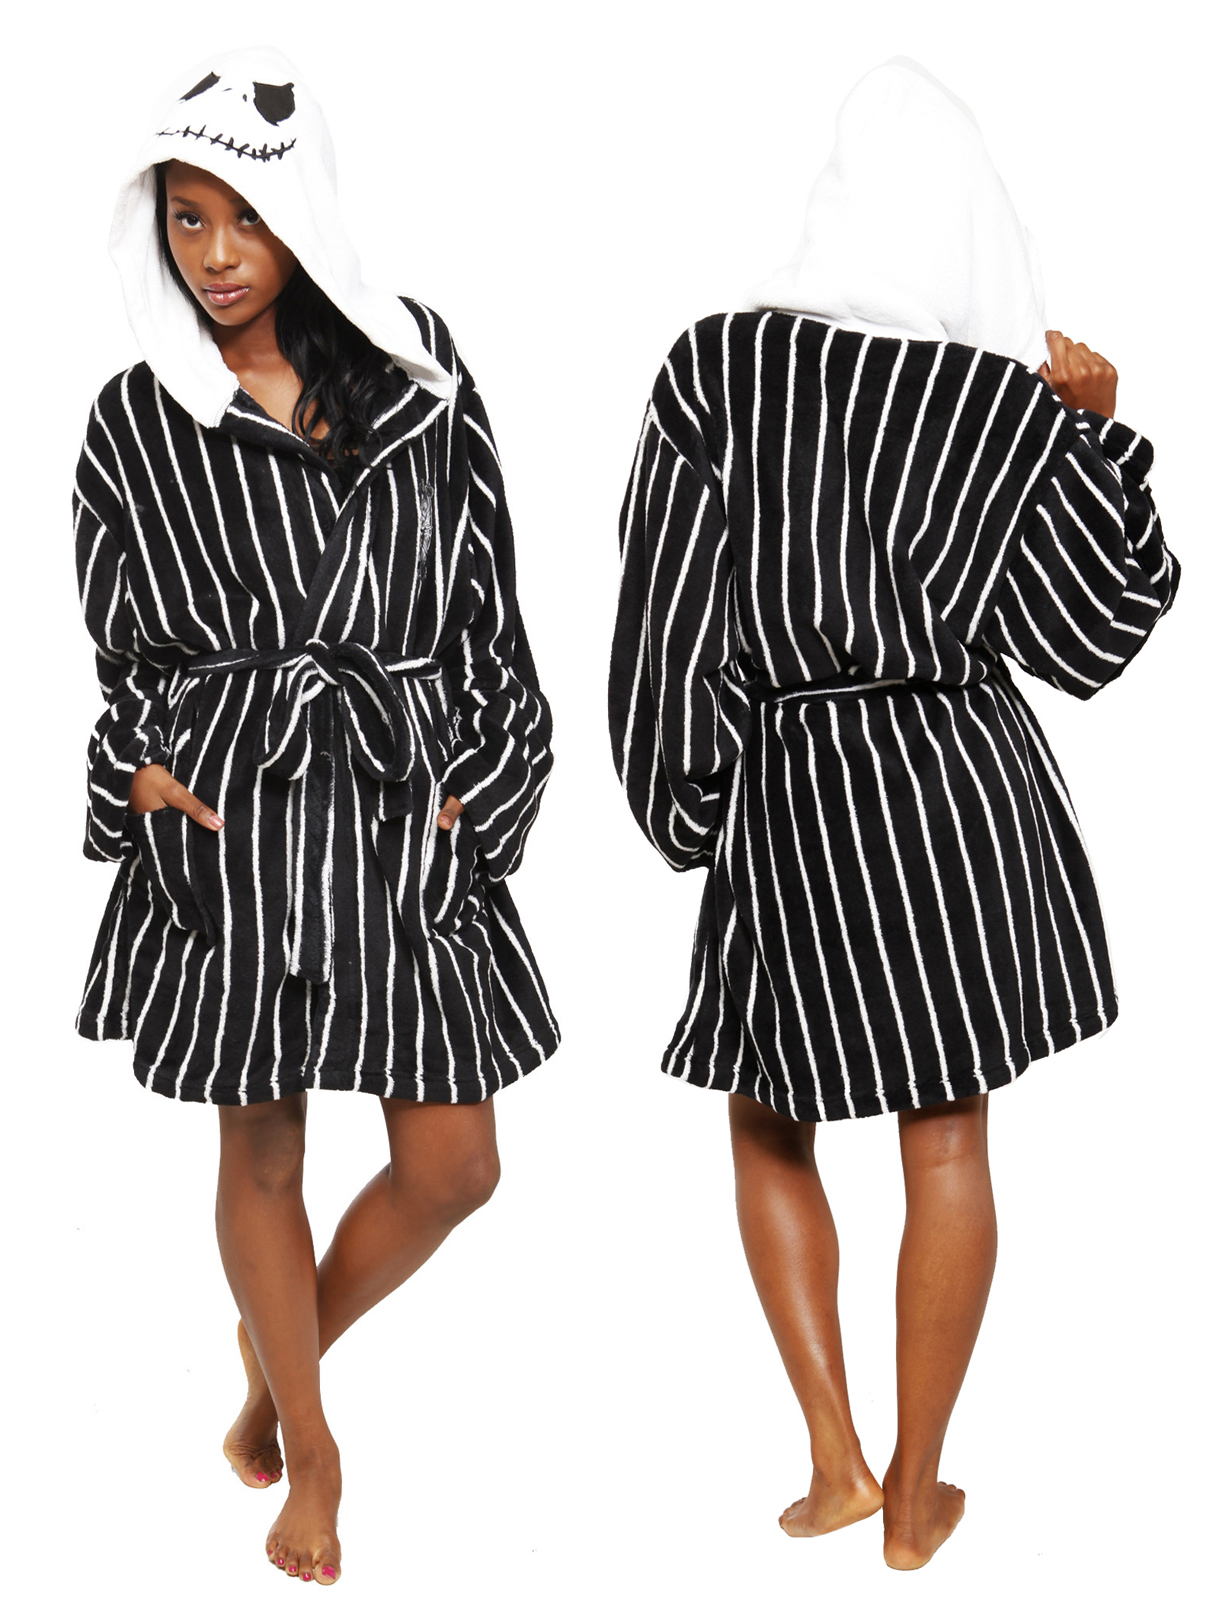 nightmare before christmas jack skellington robe